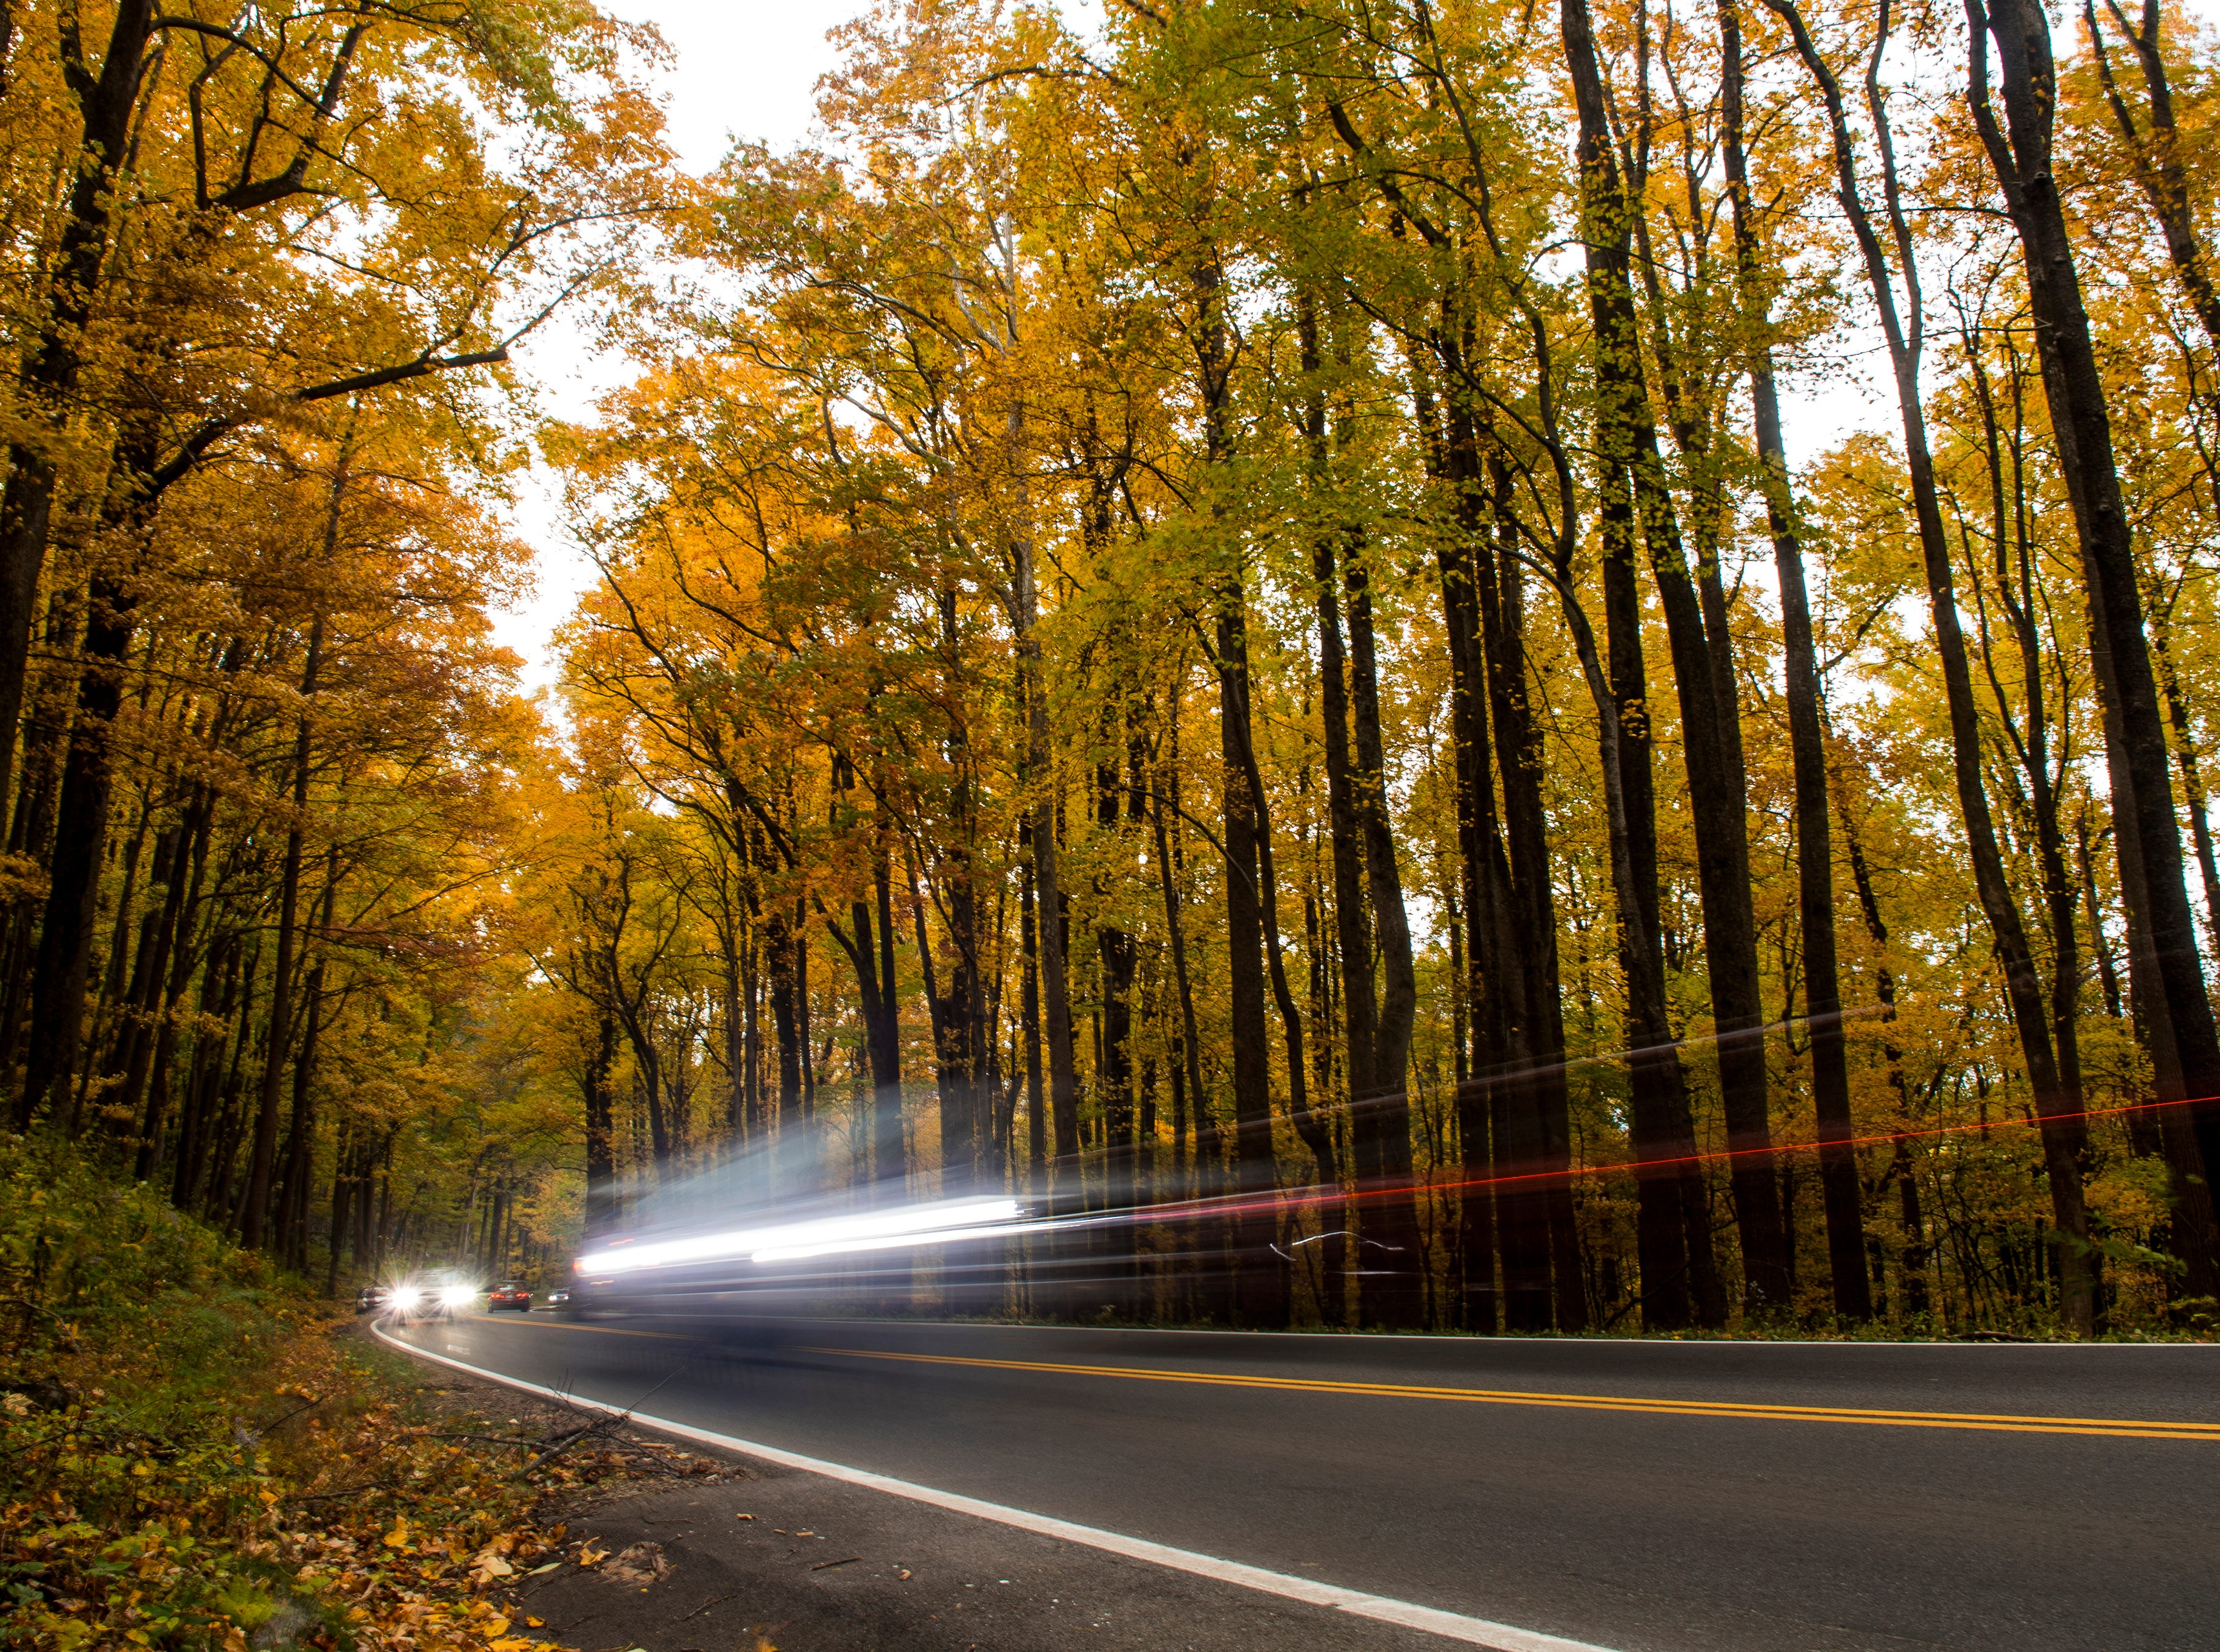 Fall foliage surround cars driving along U.S. Highway 441 in the Great Smoky Mountains National Park on Sunday, November 4, 2018.